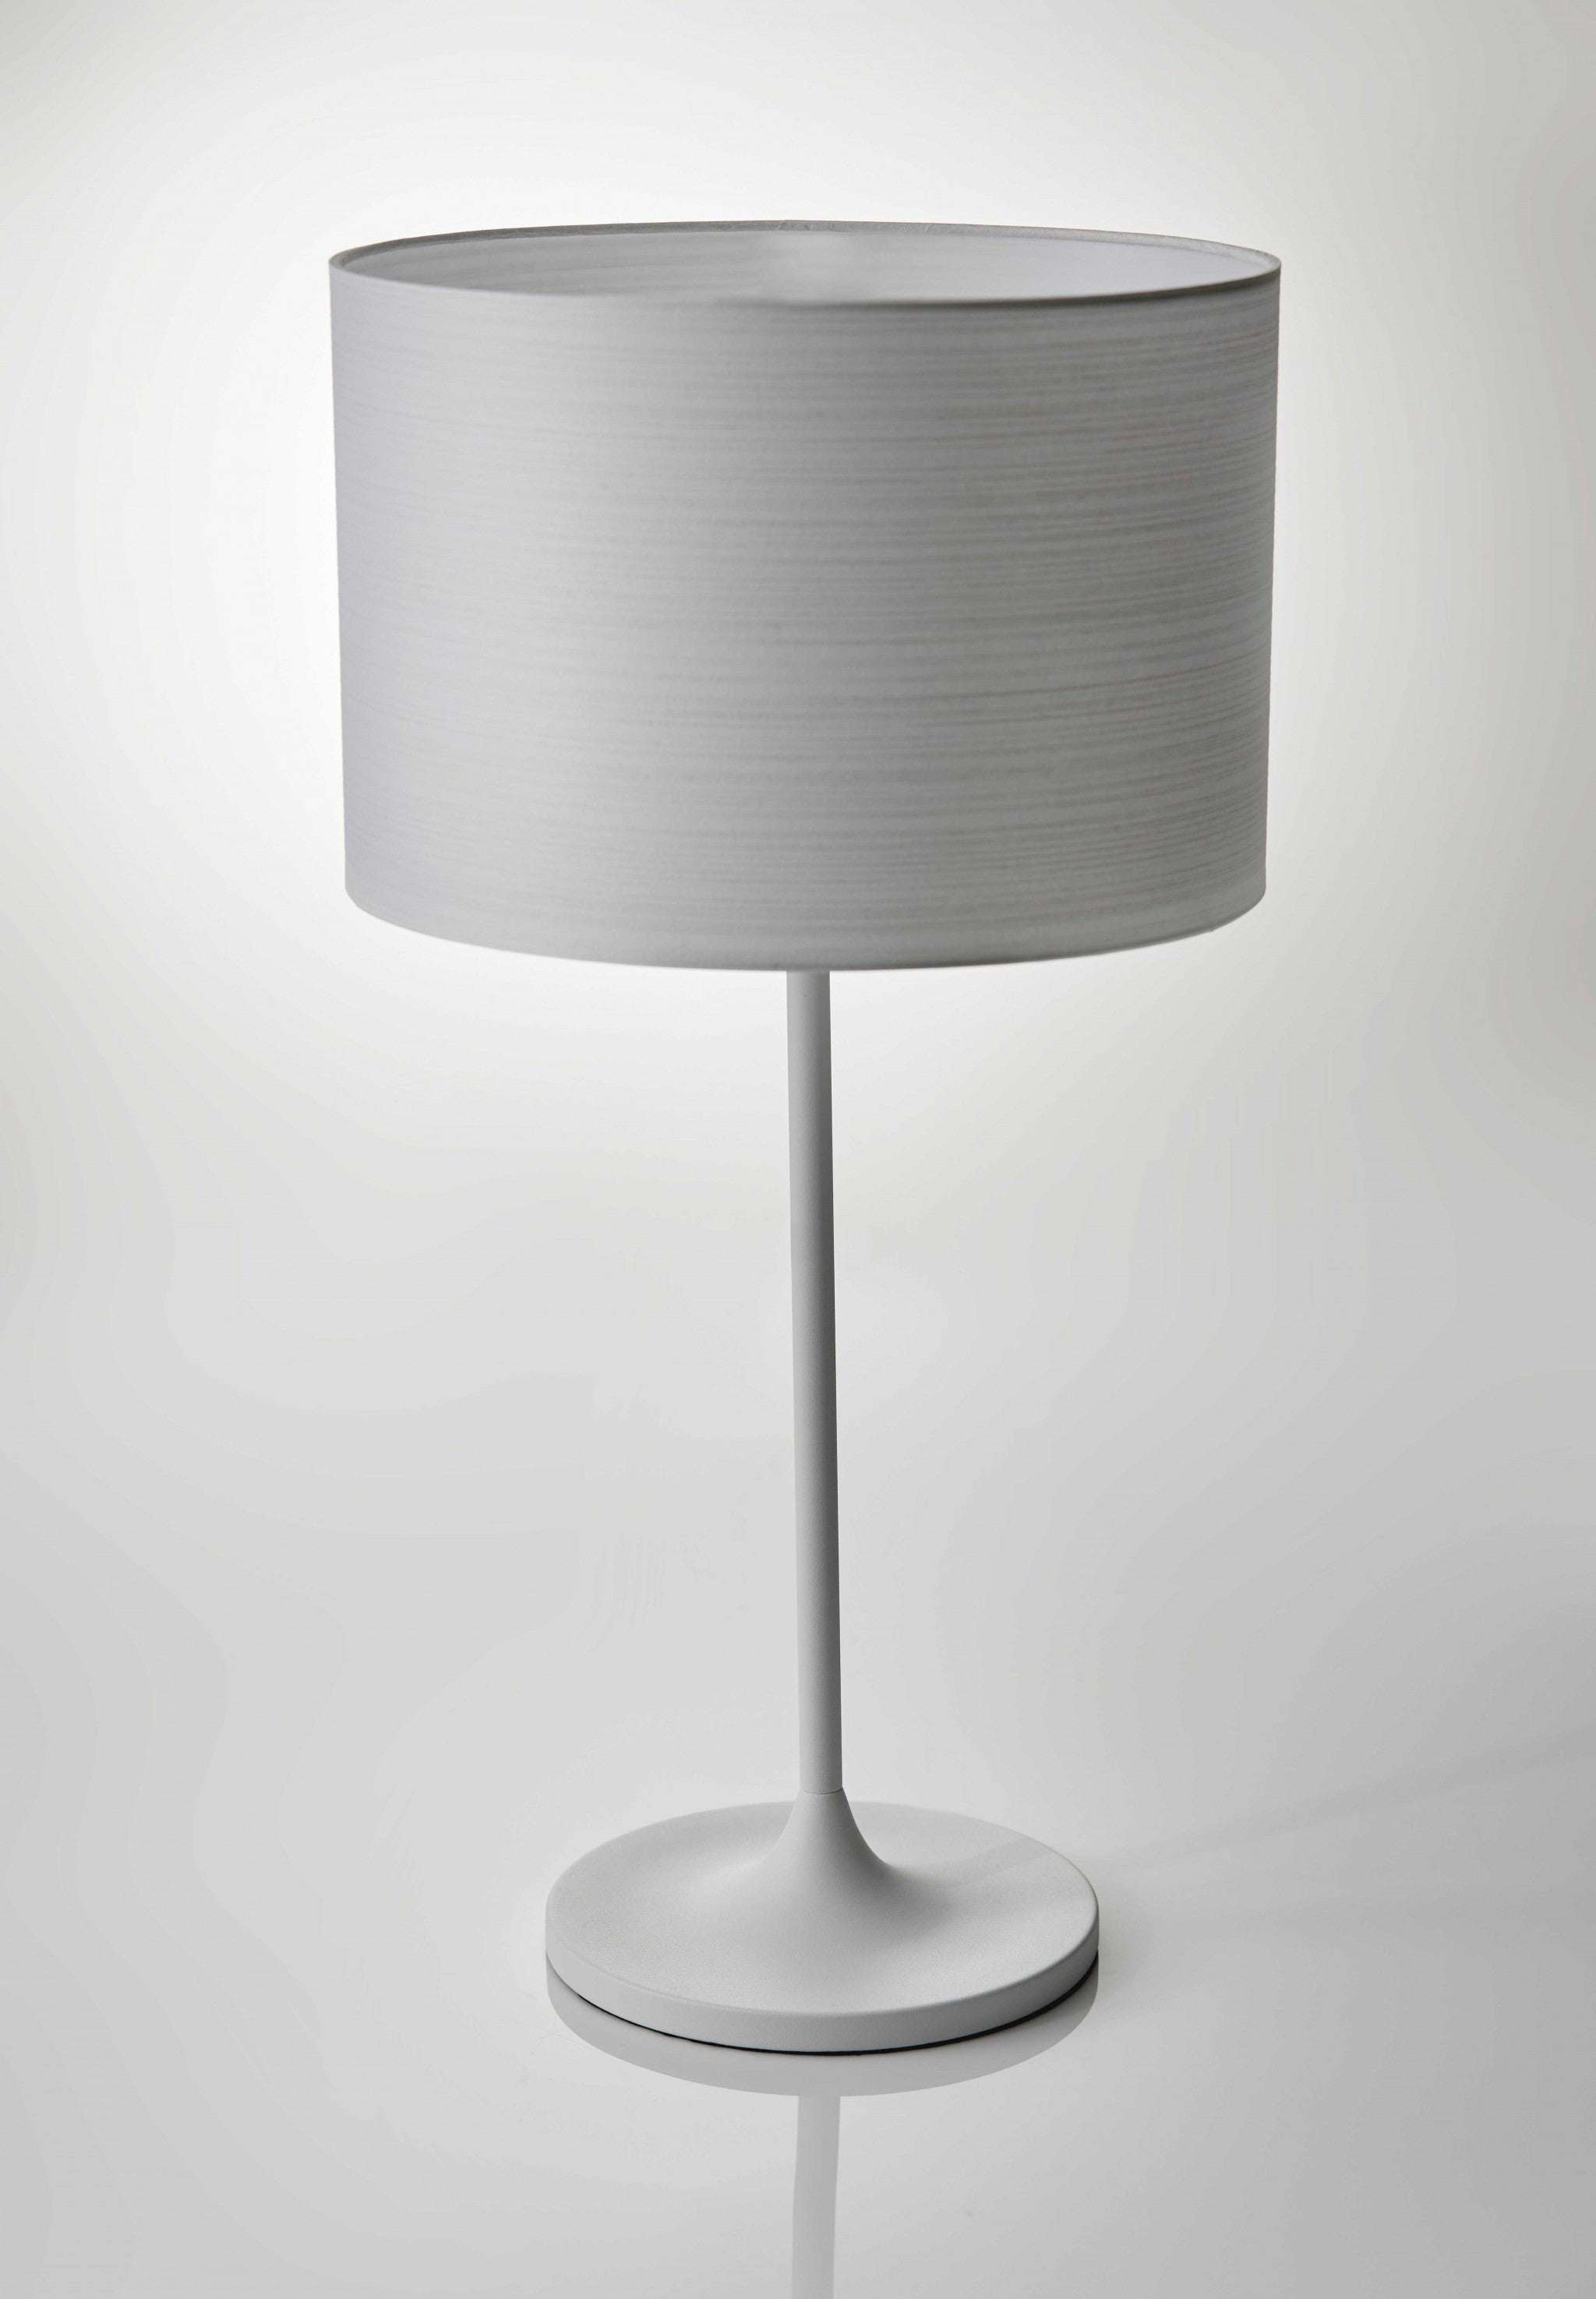 "11.5"" X 11.5"" X 22.5"" White Metal Table Lamp"